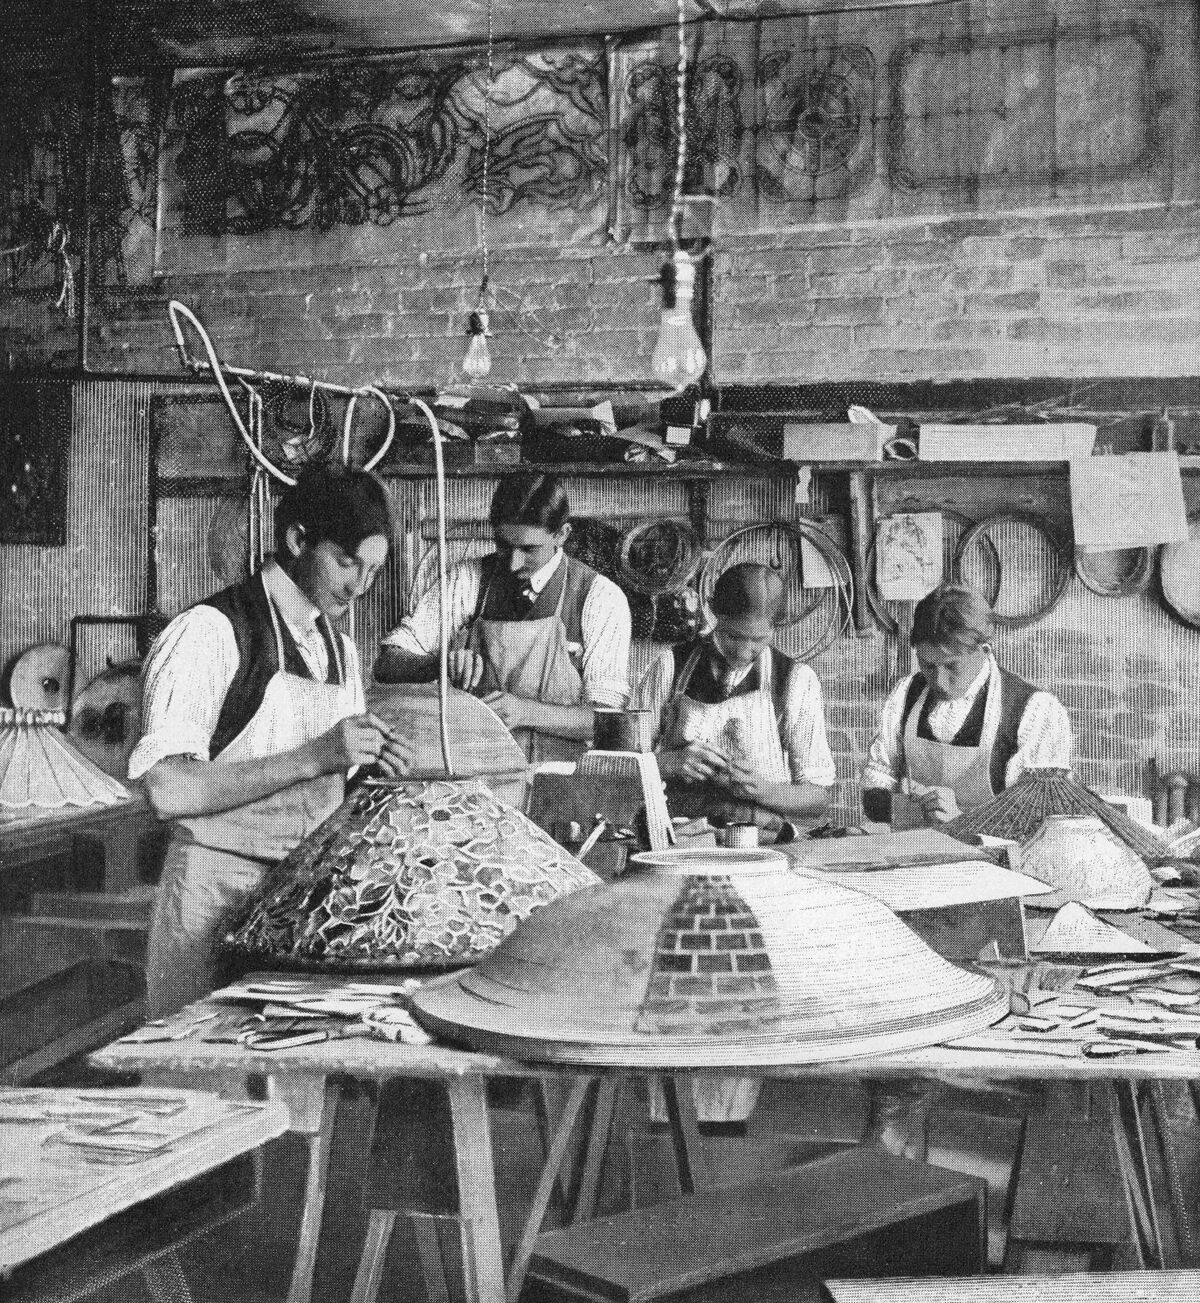 Men fabricating Tiffany's leaded glass shades, 1899. From Cosmopolitan Magazine. Courtesy of the Neustadt Collection of Tiffany Glass.